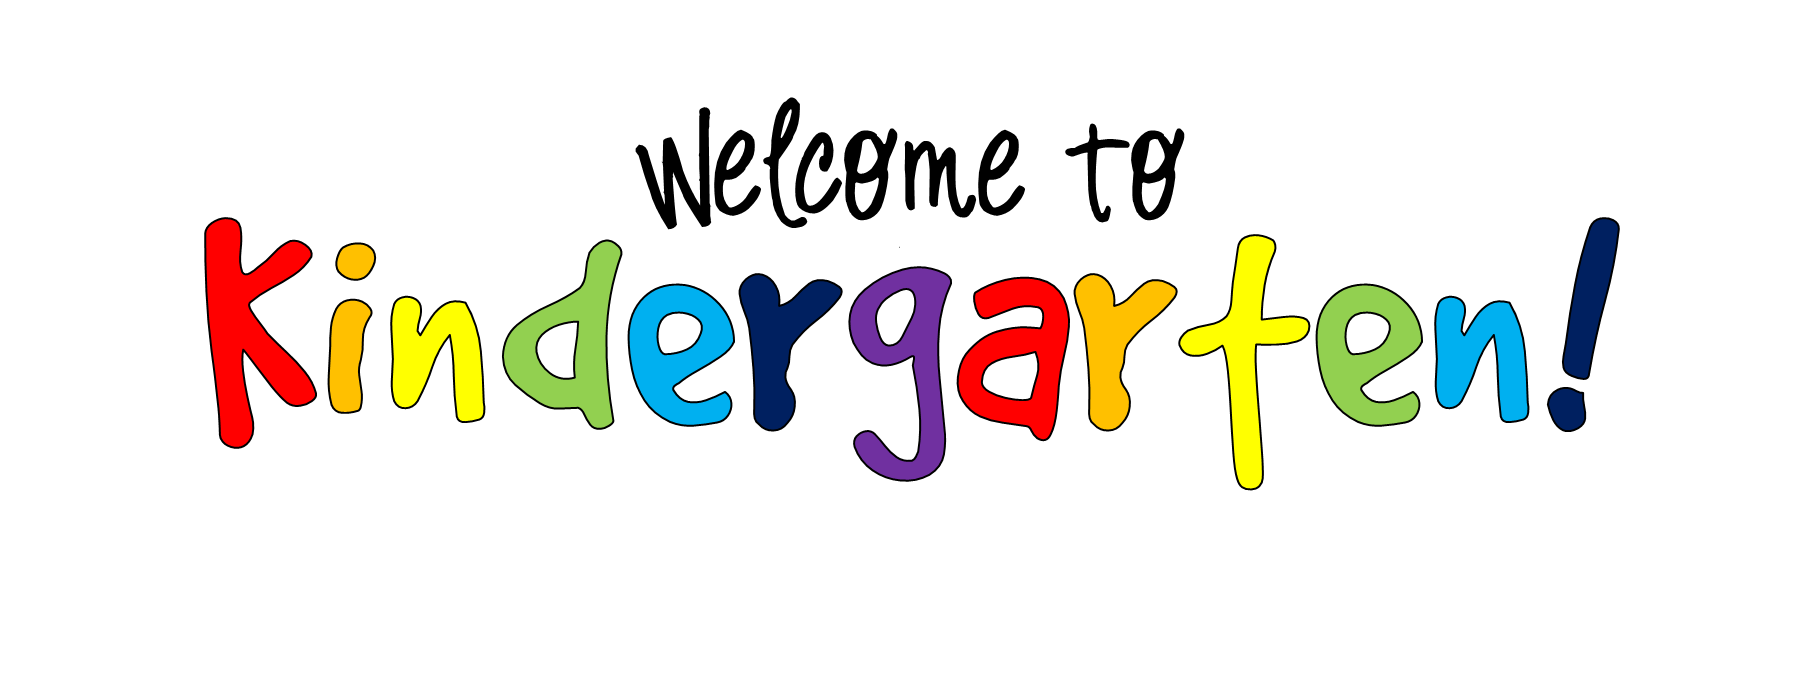 Free welcome to chesterbrook. Kindergarten clipart